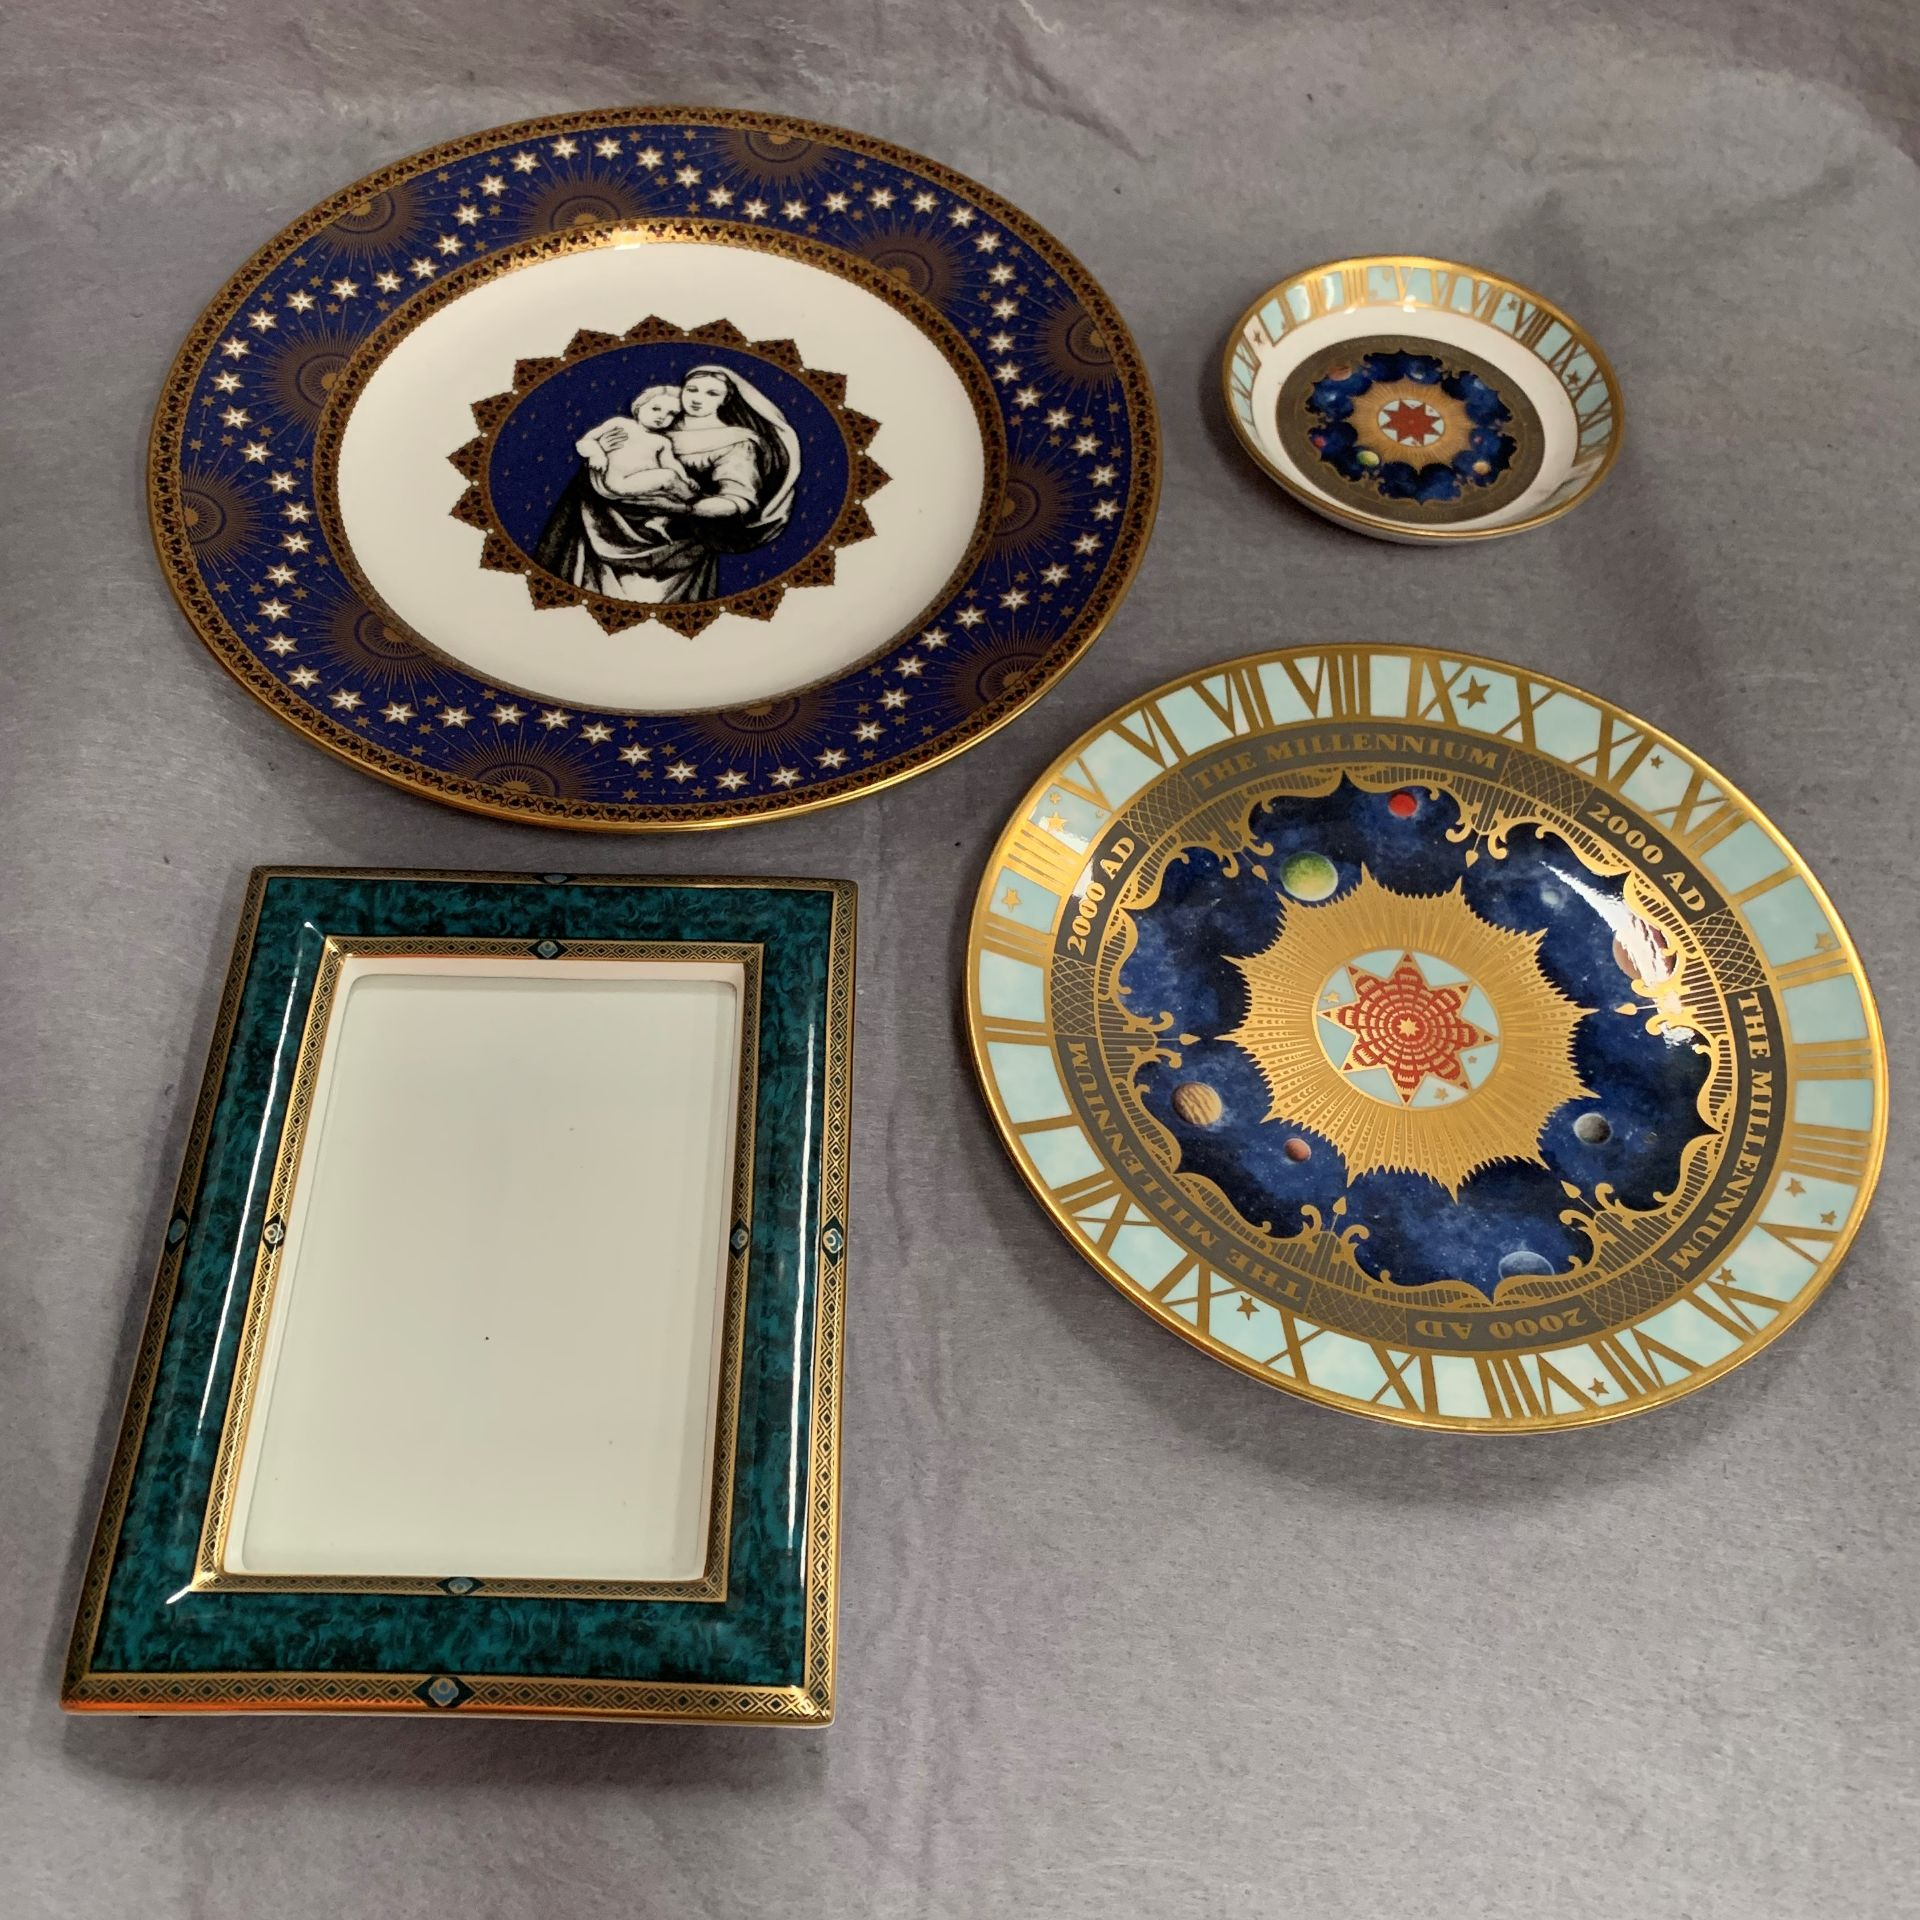 Lot 31 - 4 x items - Royal Worcester plate and trinket dish to celebrate the millennium,